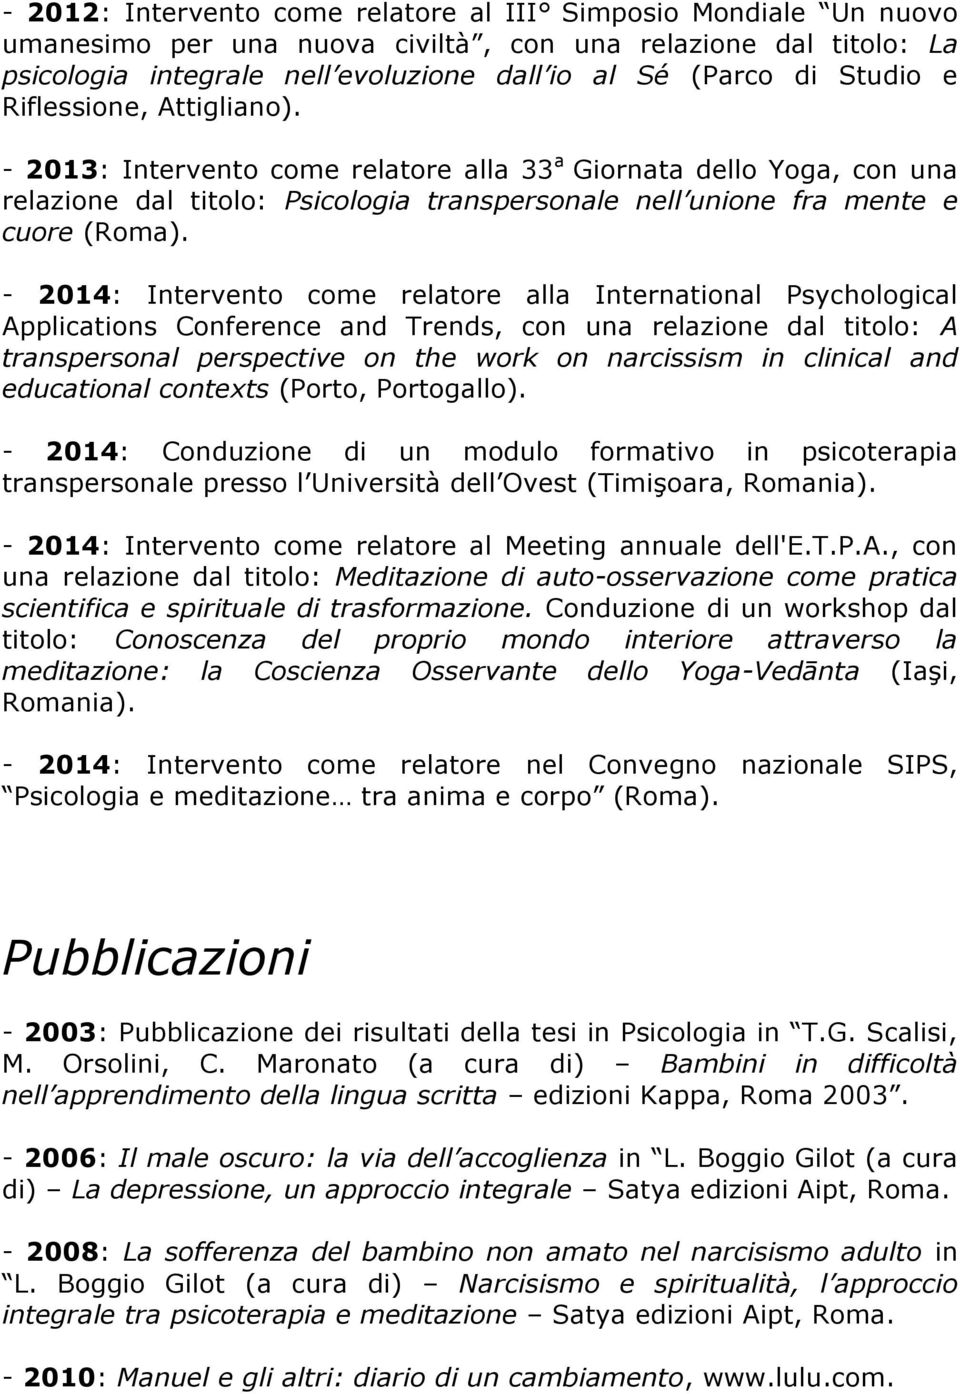 - 2014: Intervento come relatore alla International Psychological Applications Conference and Trends, con una relazione dal titolo: A transpersonal perspective on the work on narcissism in clinical